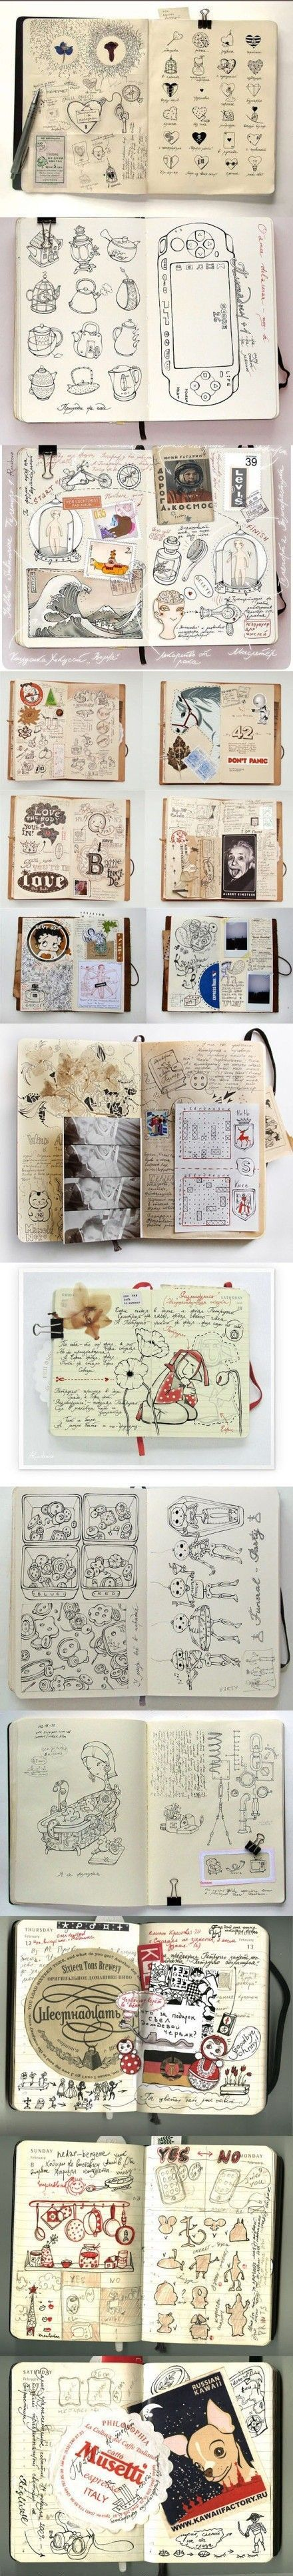 Keep a journal. I usually take my old journals, cut them apart, and repurpose them in my new journals. Life is made of cycles. So my journals are cyclical. I like this messy journal.: